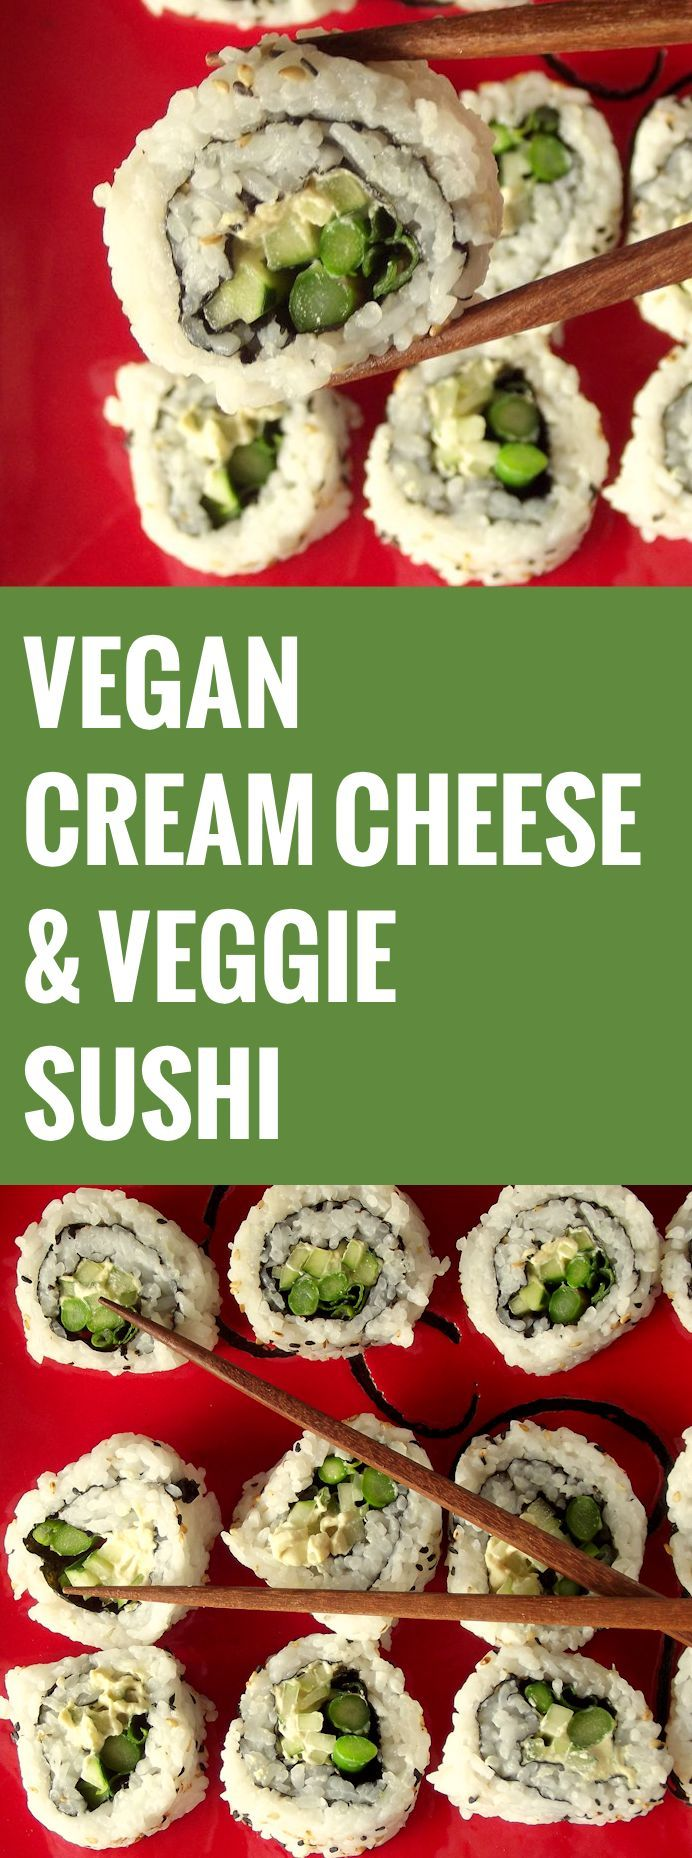 Vegan Cream Cheese and Veggie Sushi                                                                                                                                                                                 Mais